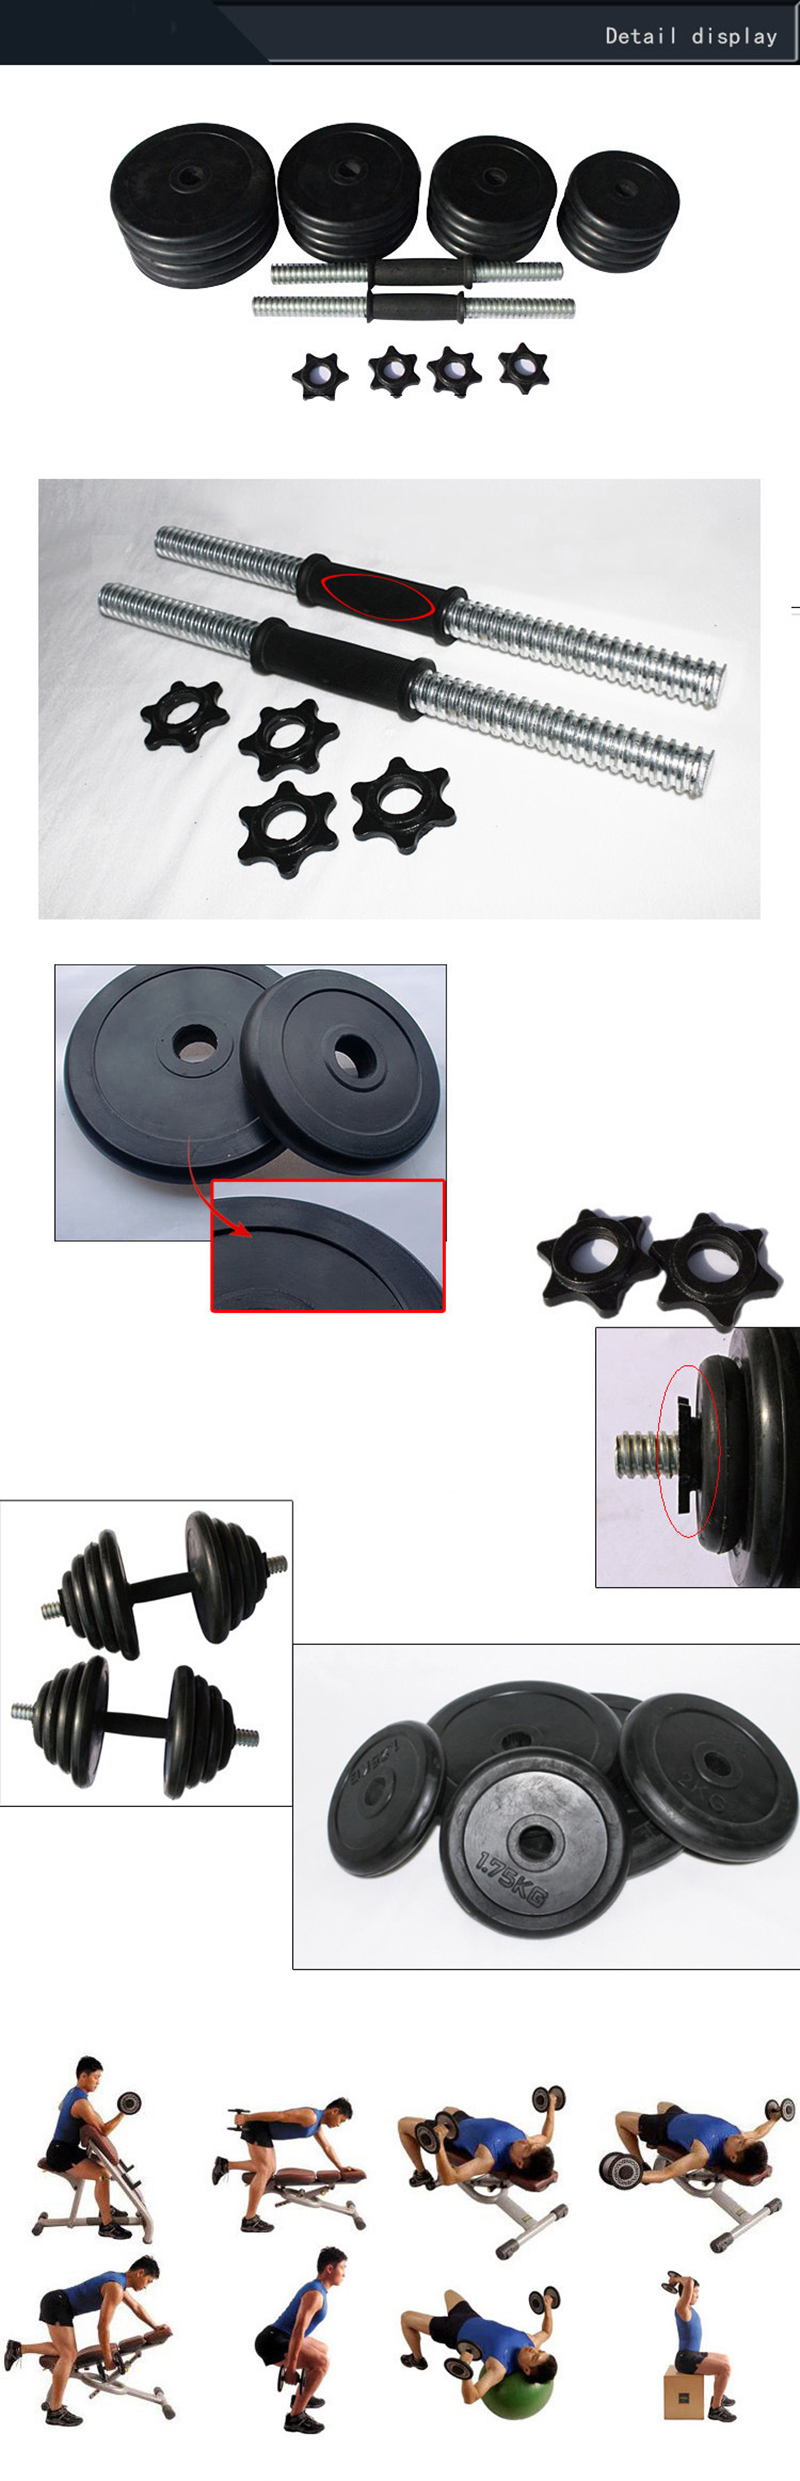 Home gym equipment adjustable plastic packets rubber dumbbell set